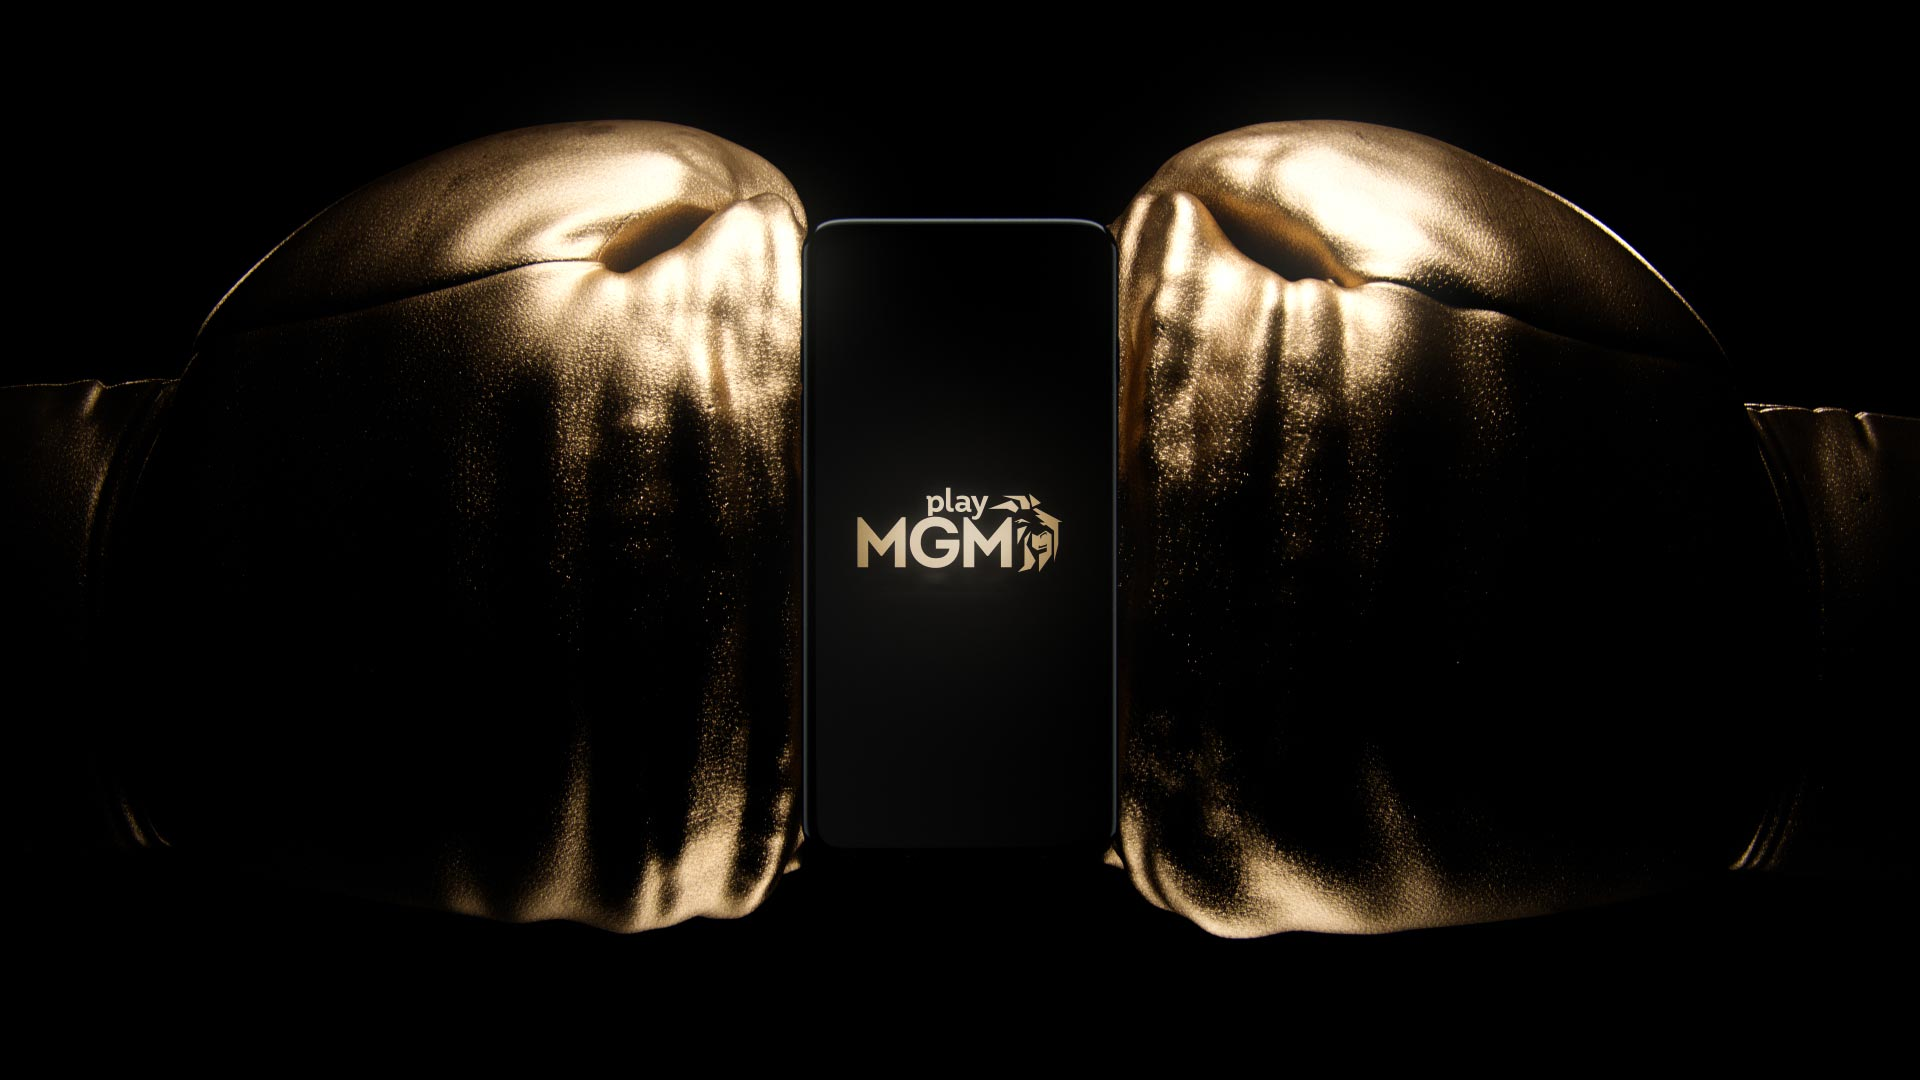 MGM_cover